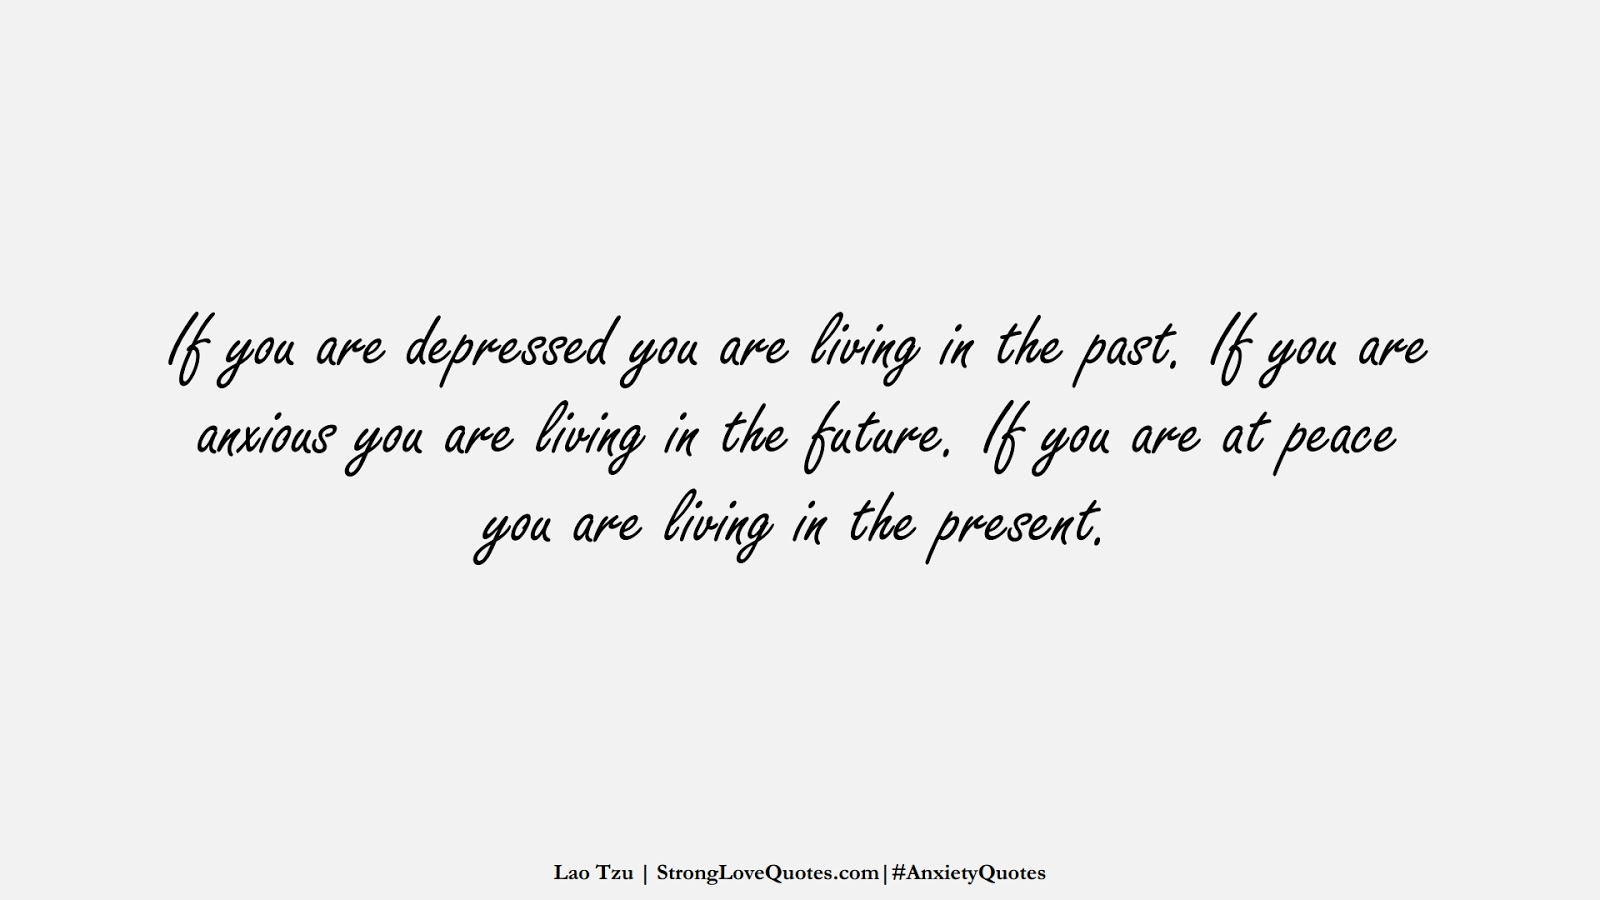 If you are depressed you are living in the past. If you are anxious you are living in the future. If you are at peace you are living in the present. (Lao Tzu);  #AnxietyQuotes